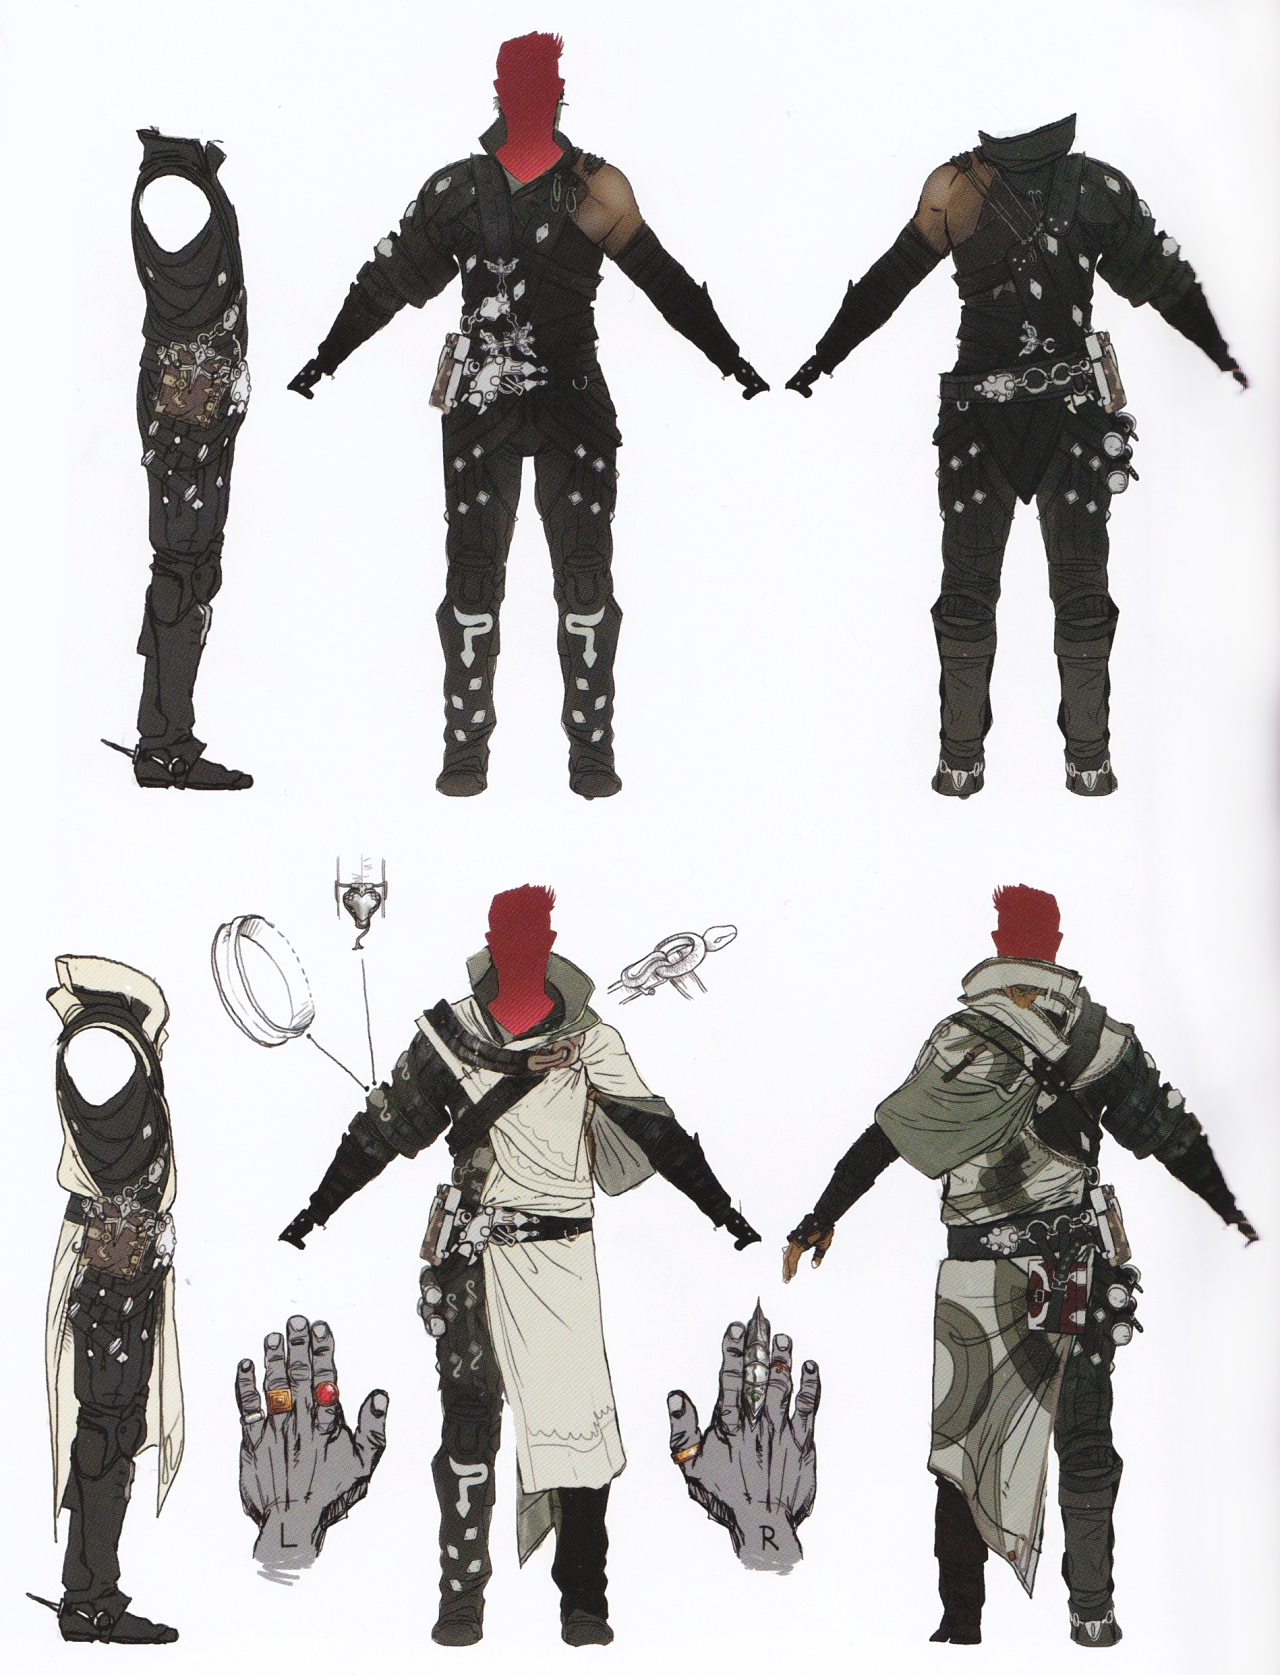 Dragon Age Inquisition Character Design Ideas : Https google pl search q cullen dragon age